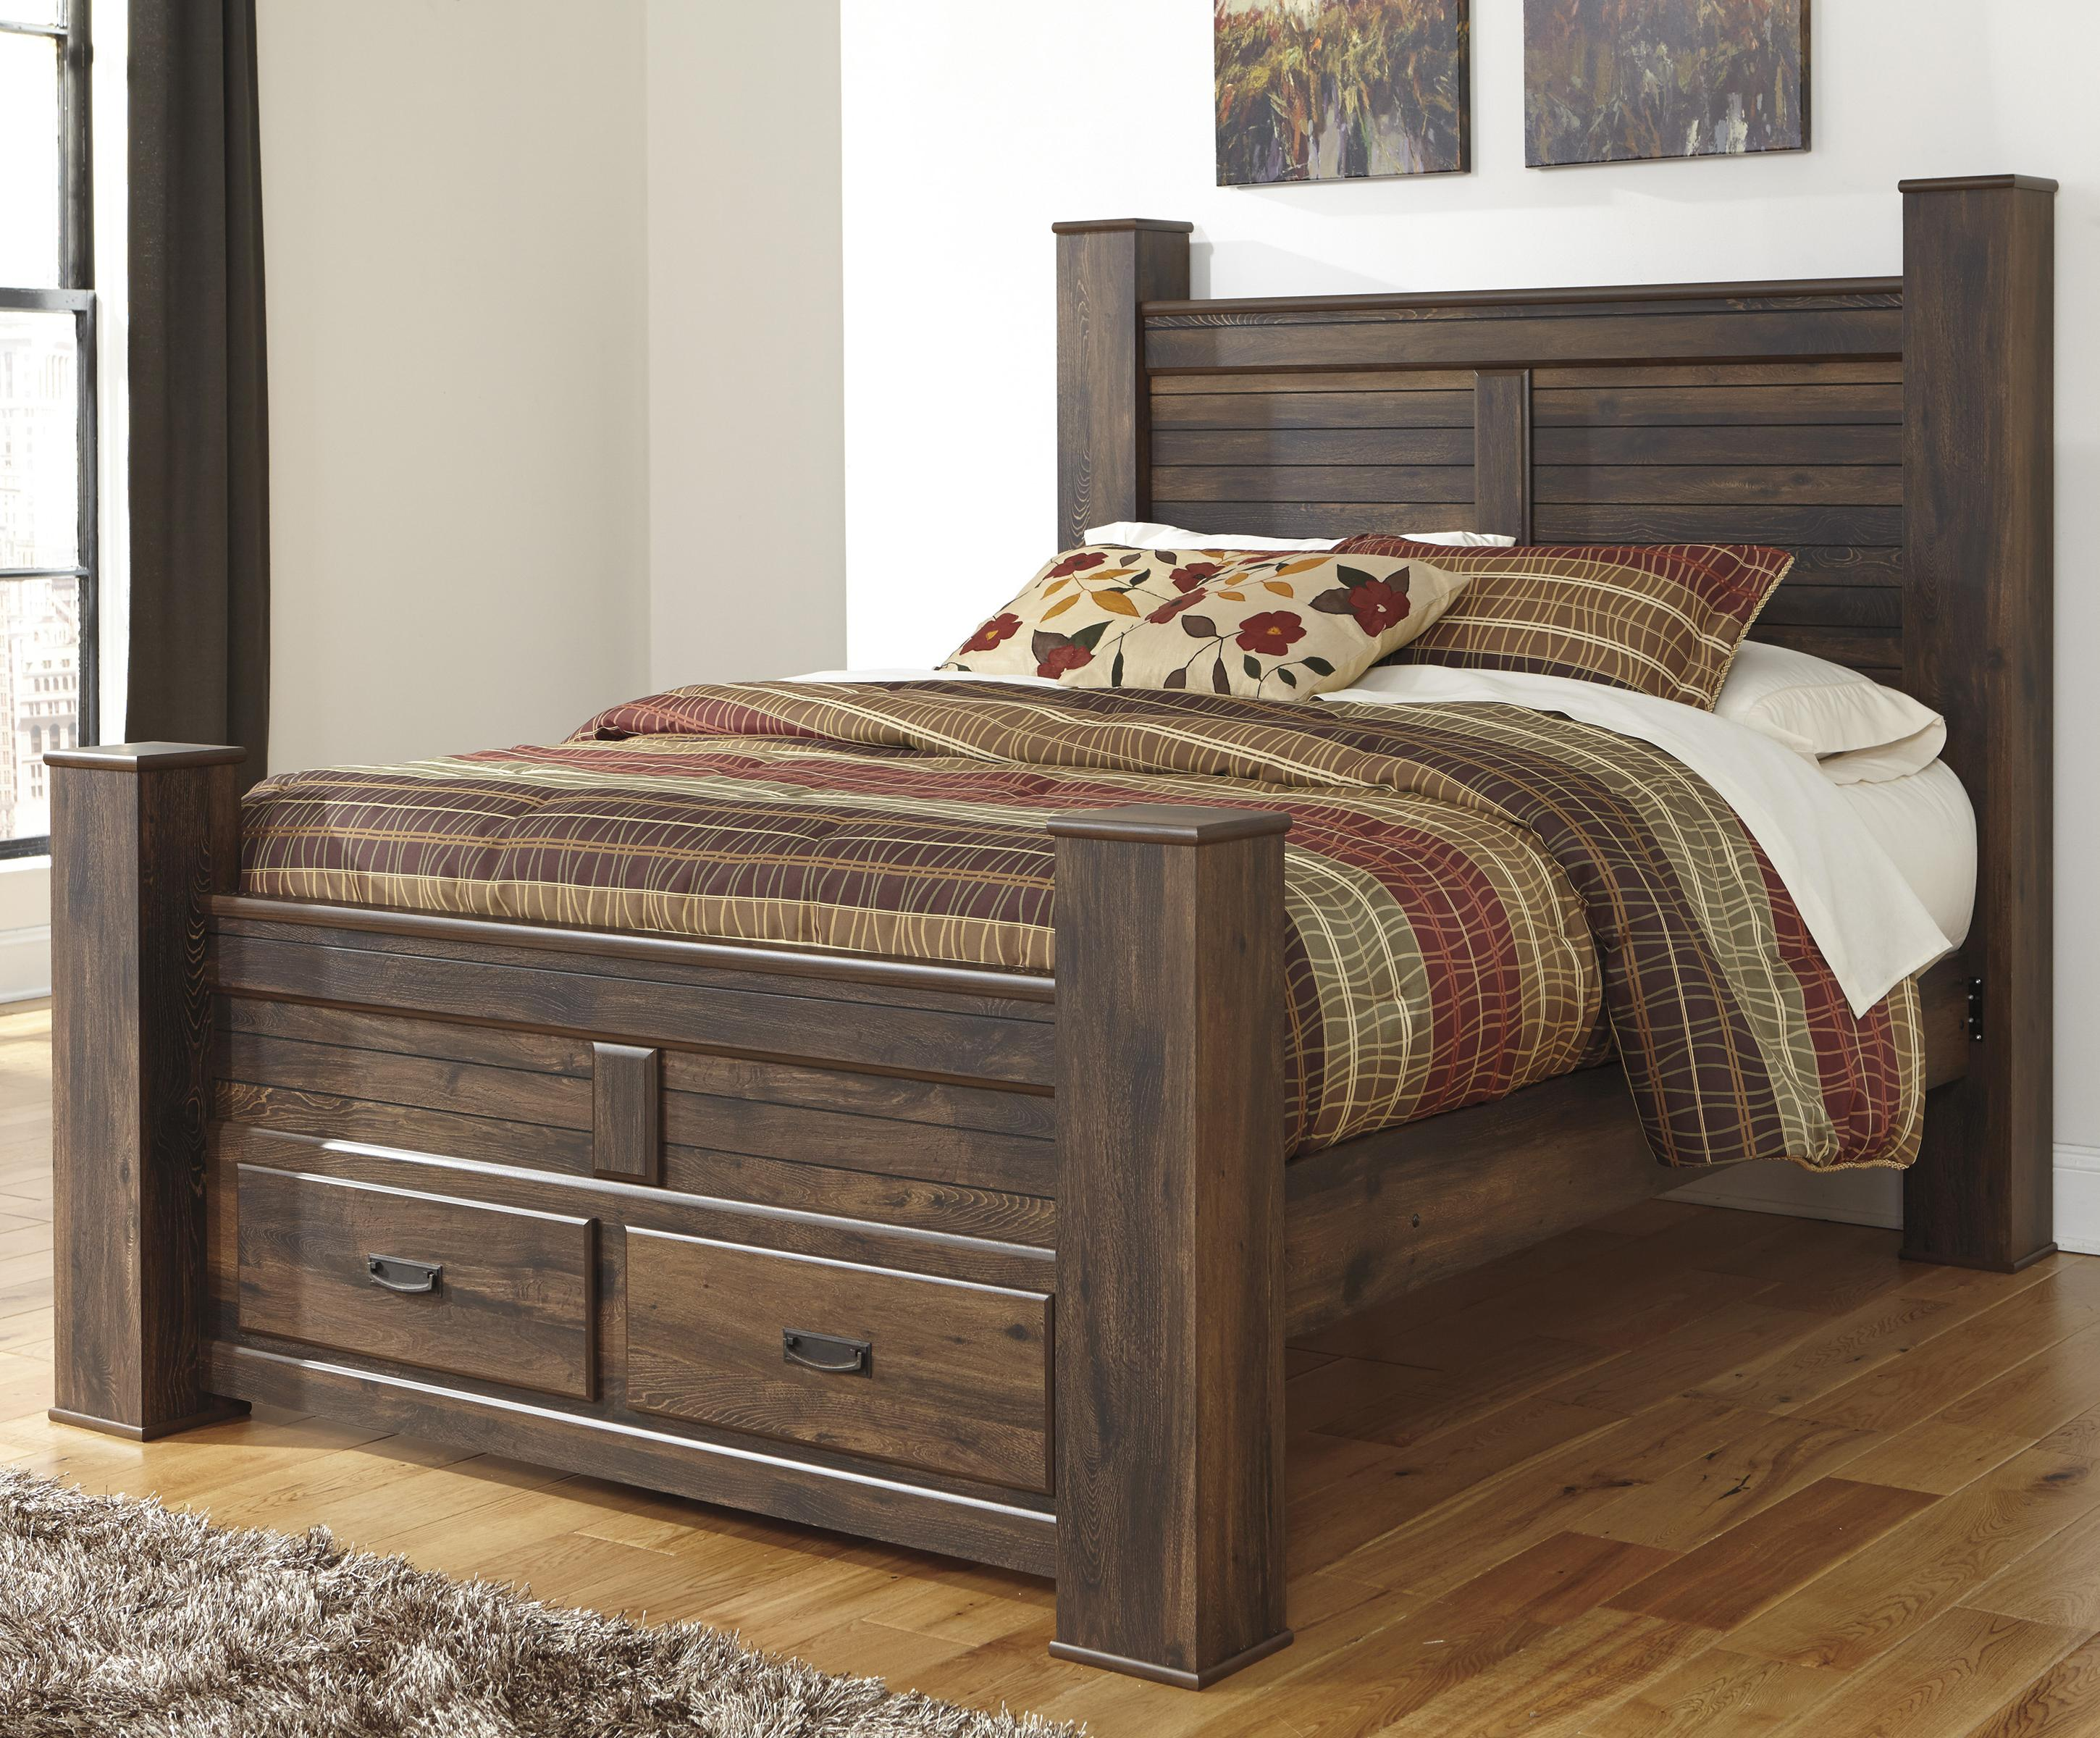 Signature Design by Ashley Quinden Queen Poster Bed with Storage - Item Number: B246-67+64S+61+98